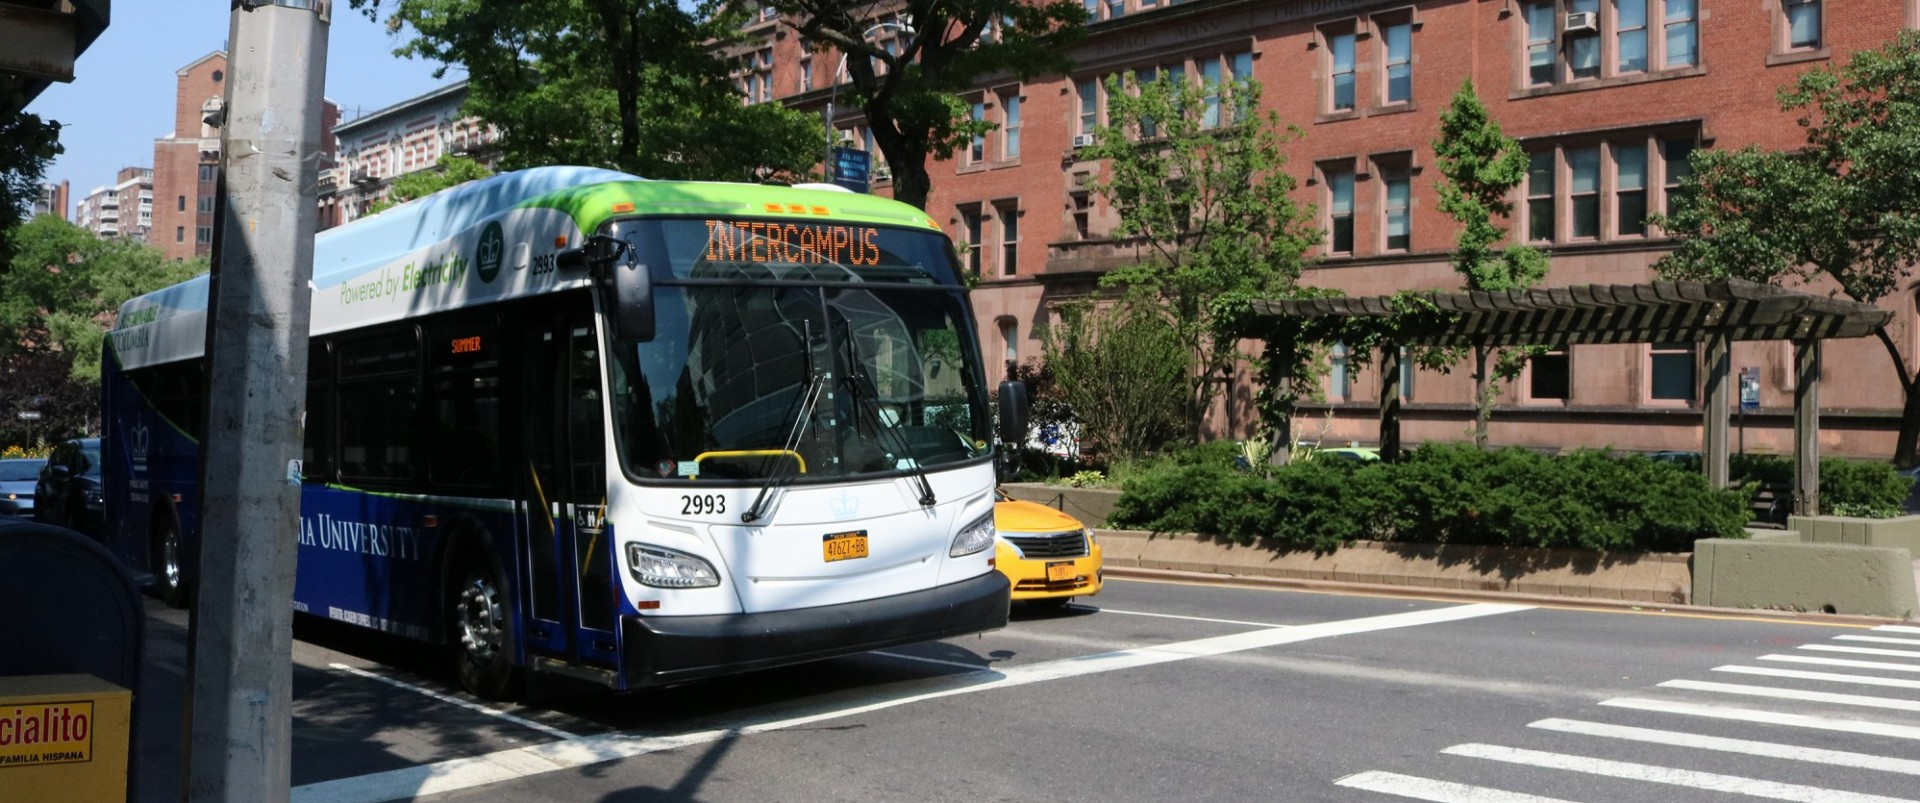 Photo of a Columbia University Intercampus Shuttle bus